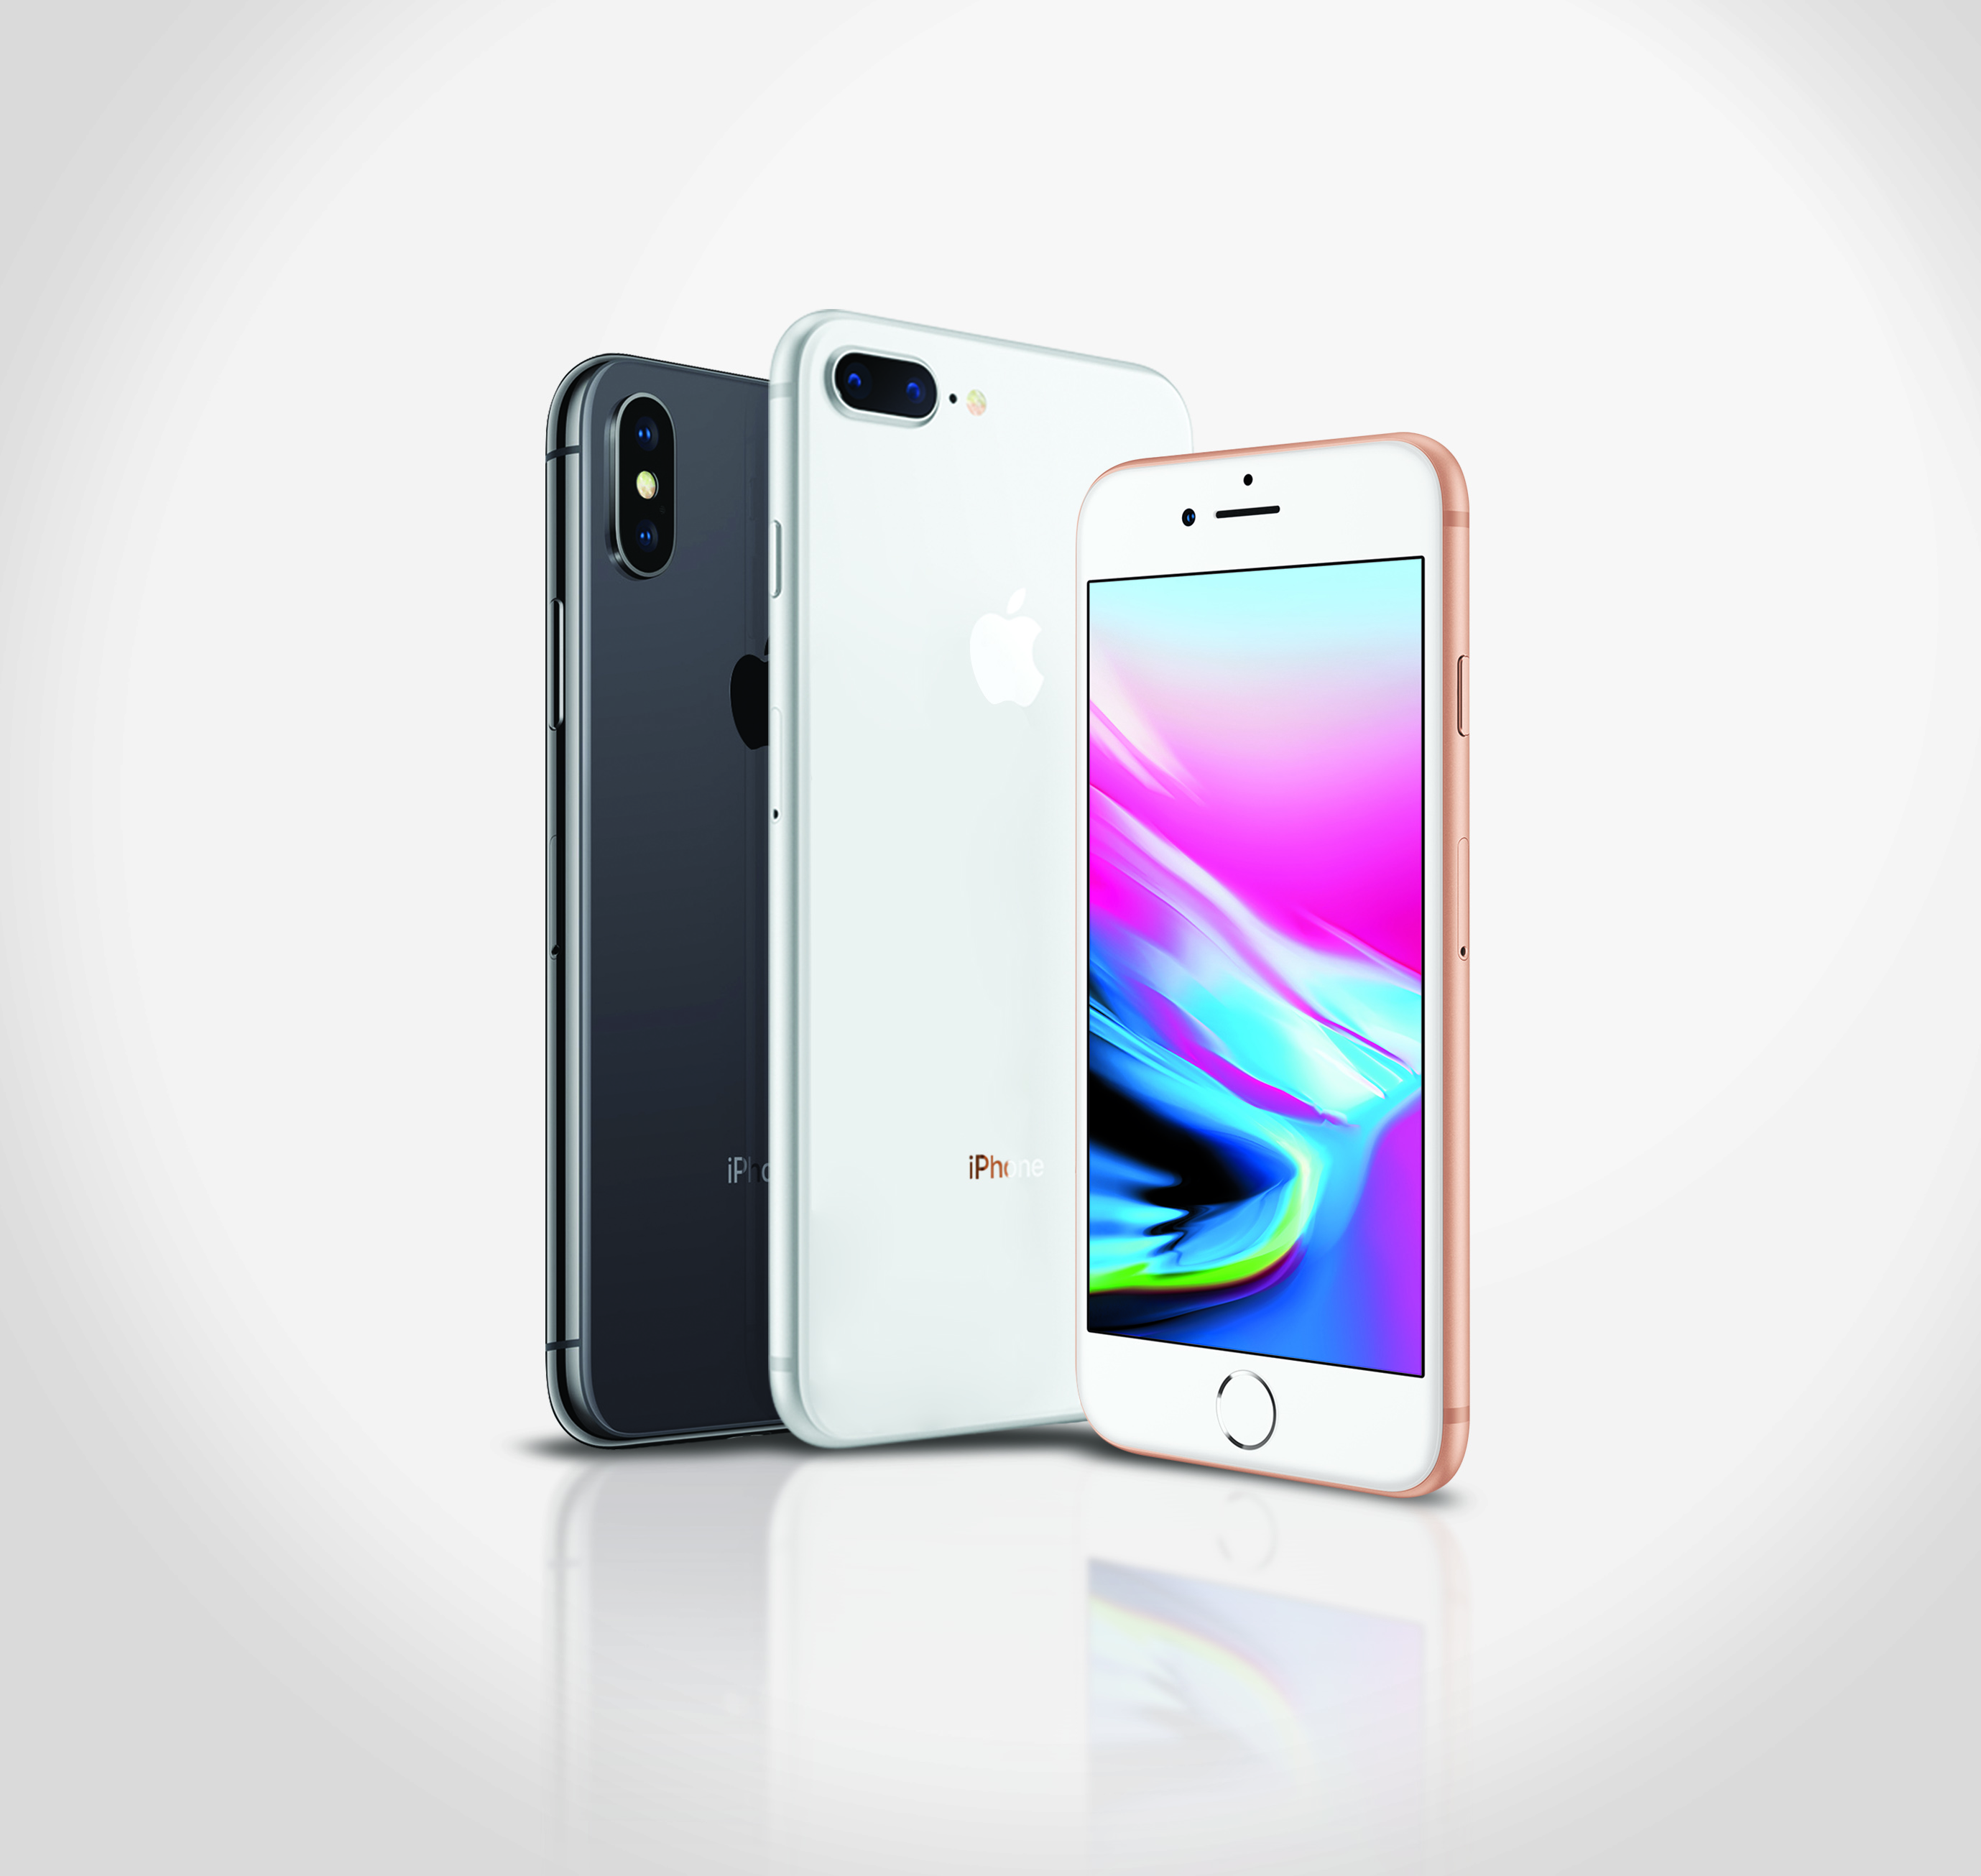 IPHONE 8, IPHONE PLUS Y IPHONE X DISPONIBLE EN TODAS LAS